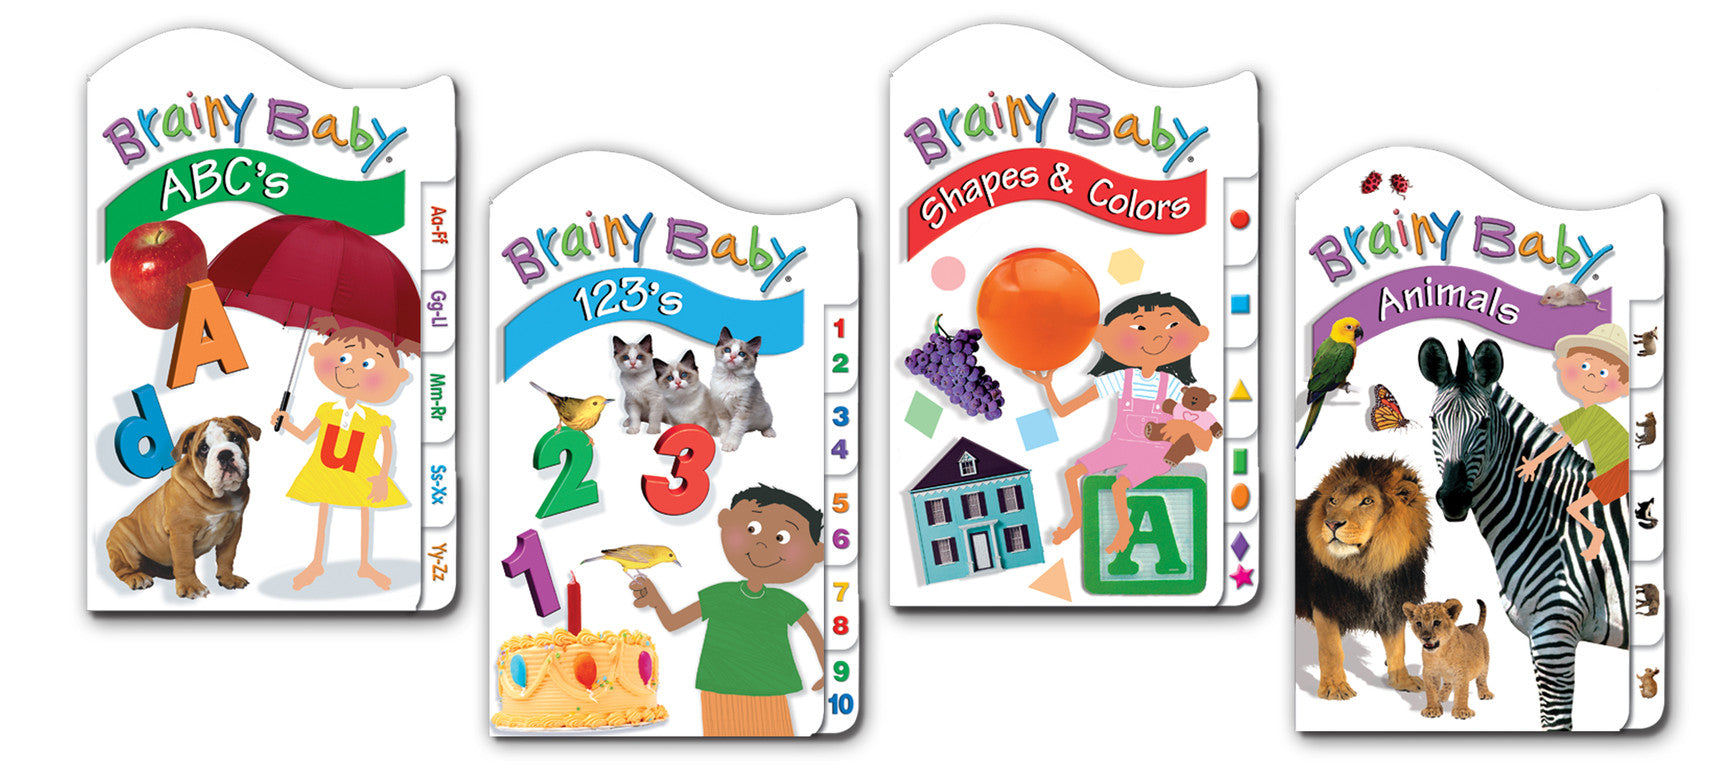 Brainy Baby Classic Tab Books, Animals, 123s, ABCs, Shapes and Colors